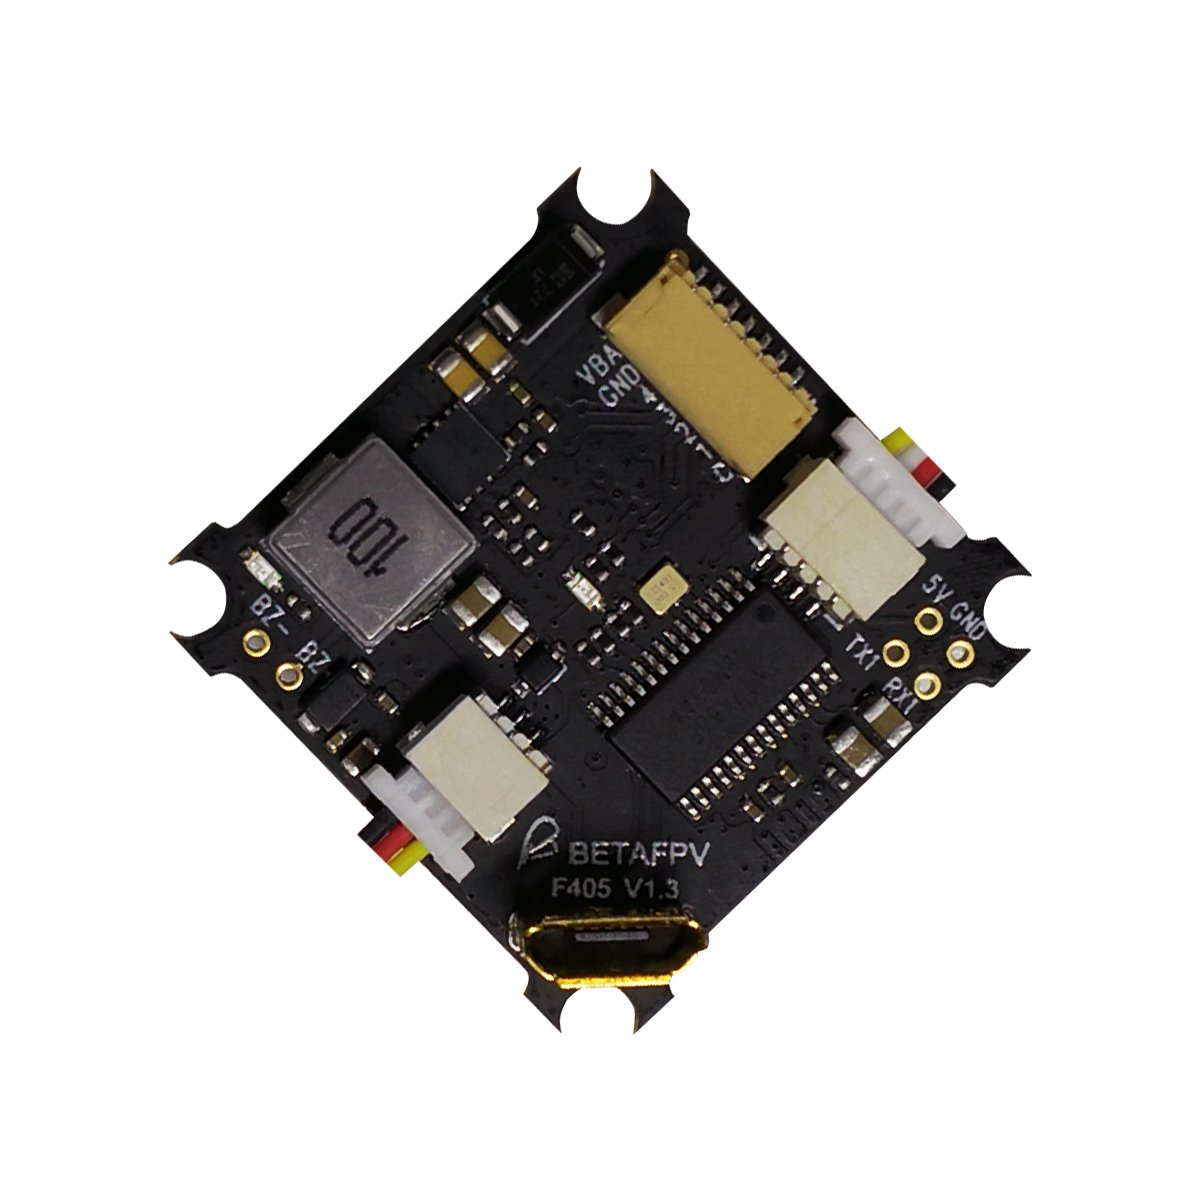 "<font color=""red"">New*</font> BetaFPV F405 4S Flight Controller (V1.3) No RX - SNHE"